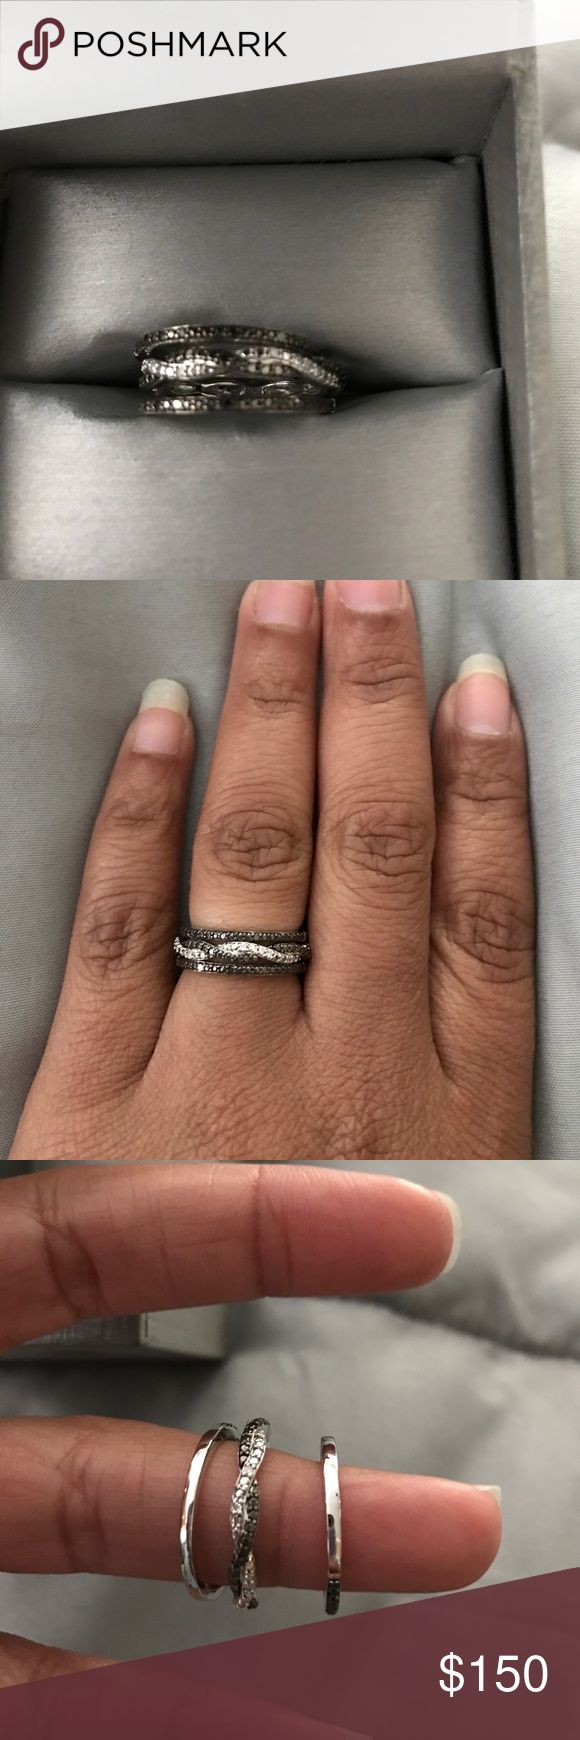 Black diamonds three band ring Silver and black diamonds three band ring. Brand new. Never worn. Purchased another ring instead. Zales Jewelry Rings